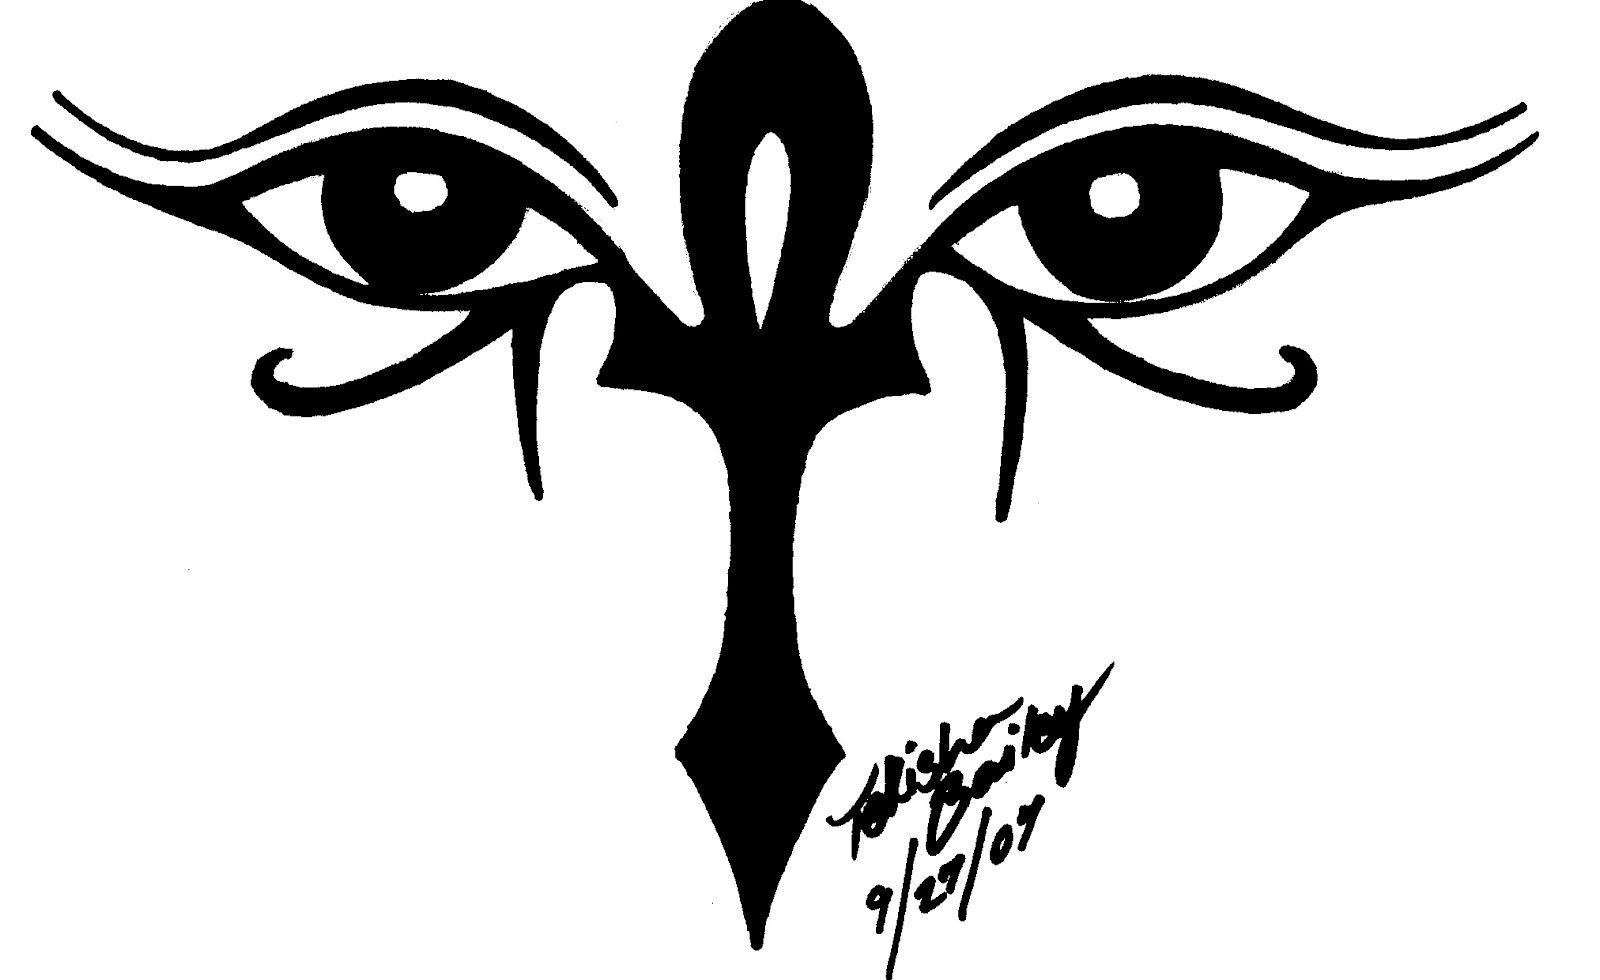 impressive black ankh and eyes of horus tattoo design by rainbowmaker. Black Bedroom Furniture Sets. Home Design Ideas